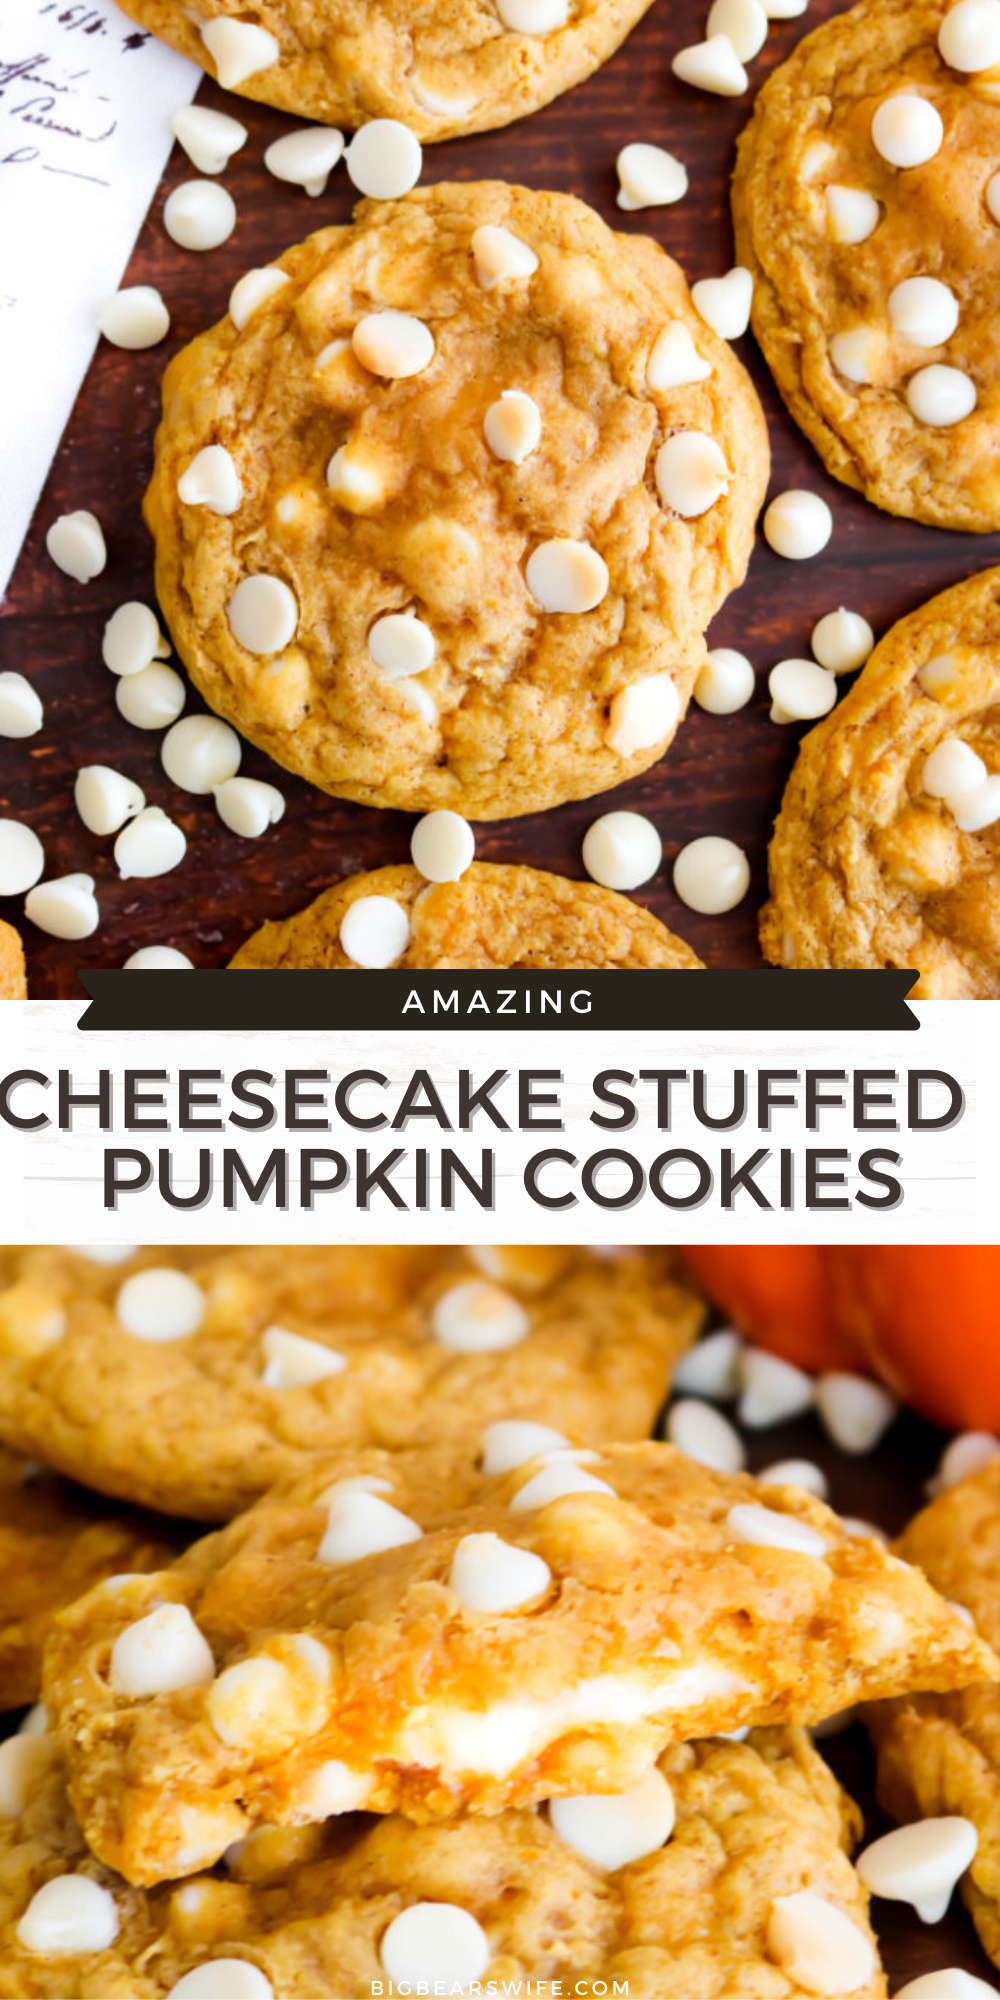 These Cheesecake Stuffed Pumpkin Cookies are soft and chewy with a cheesecake stuffed center. Plus they're made with pumpkin, pumpkin spice and white chocolate chips which makes them the perfect fall cookie! via @bigbearswife